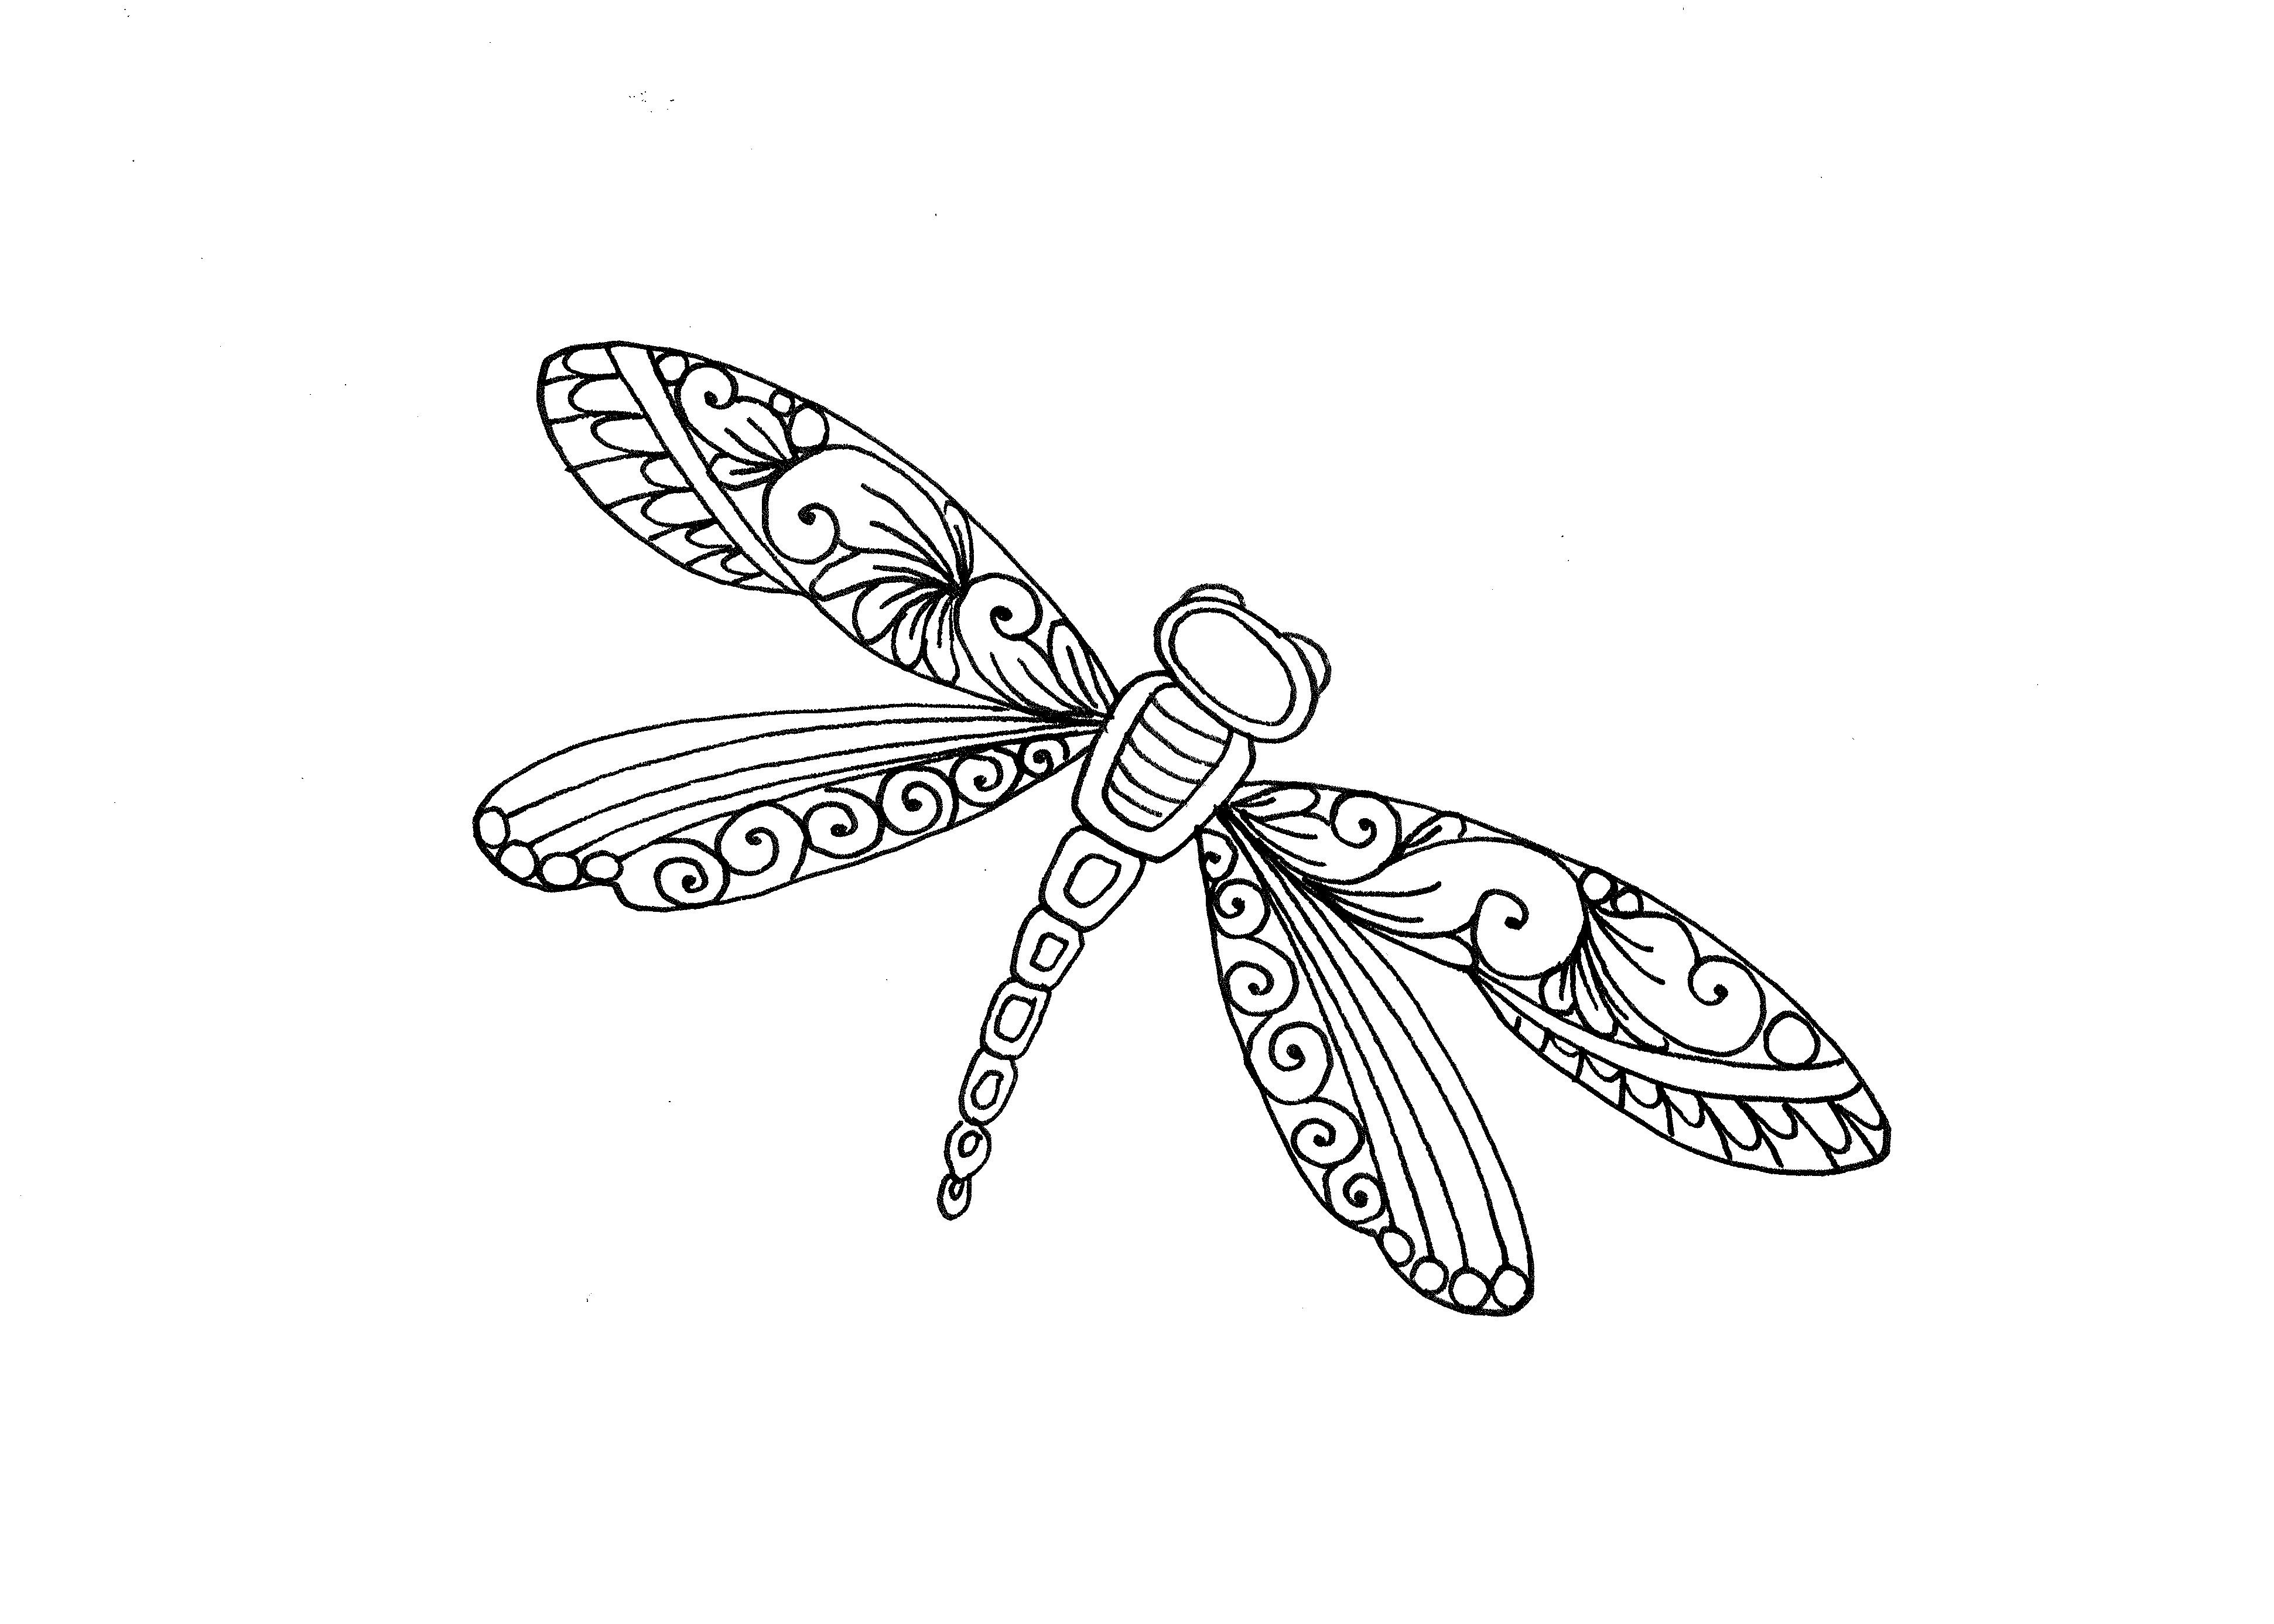 Dragonfly Coloring Page Illustrated By Marie Browning Coloring Pages Coloring Book Art Color